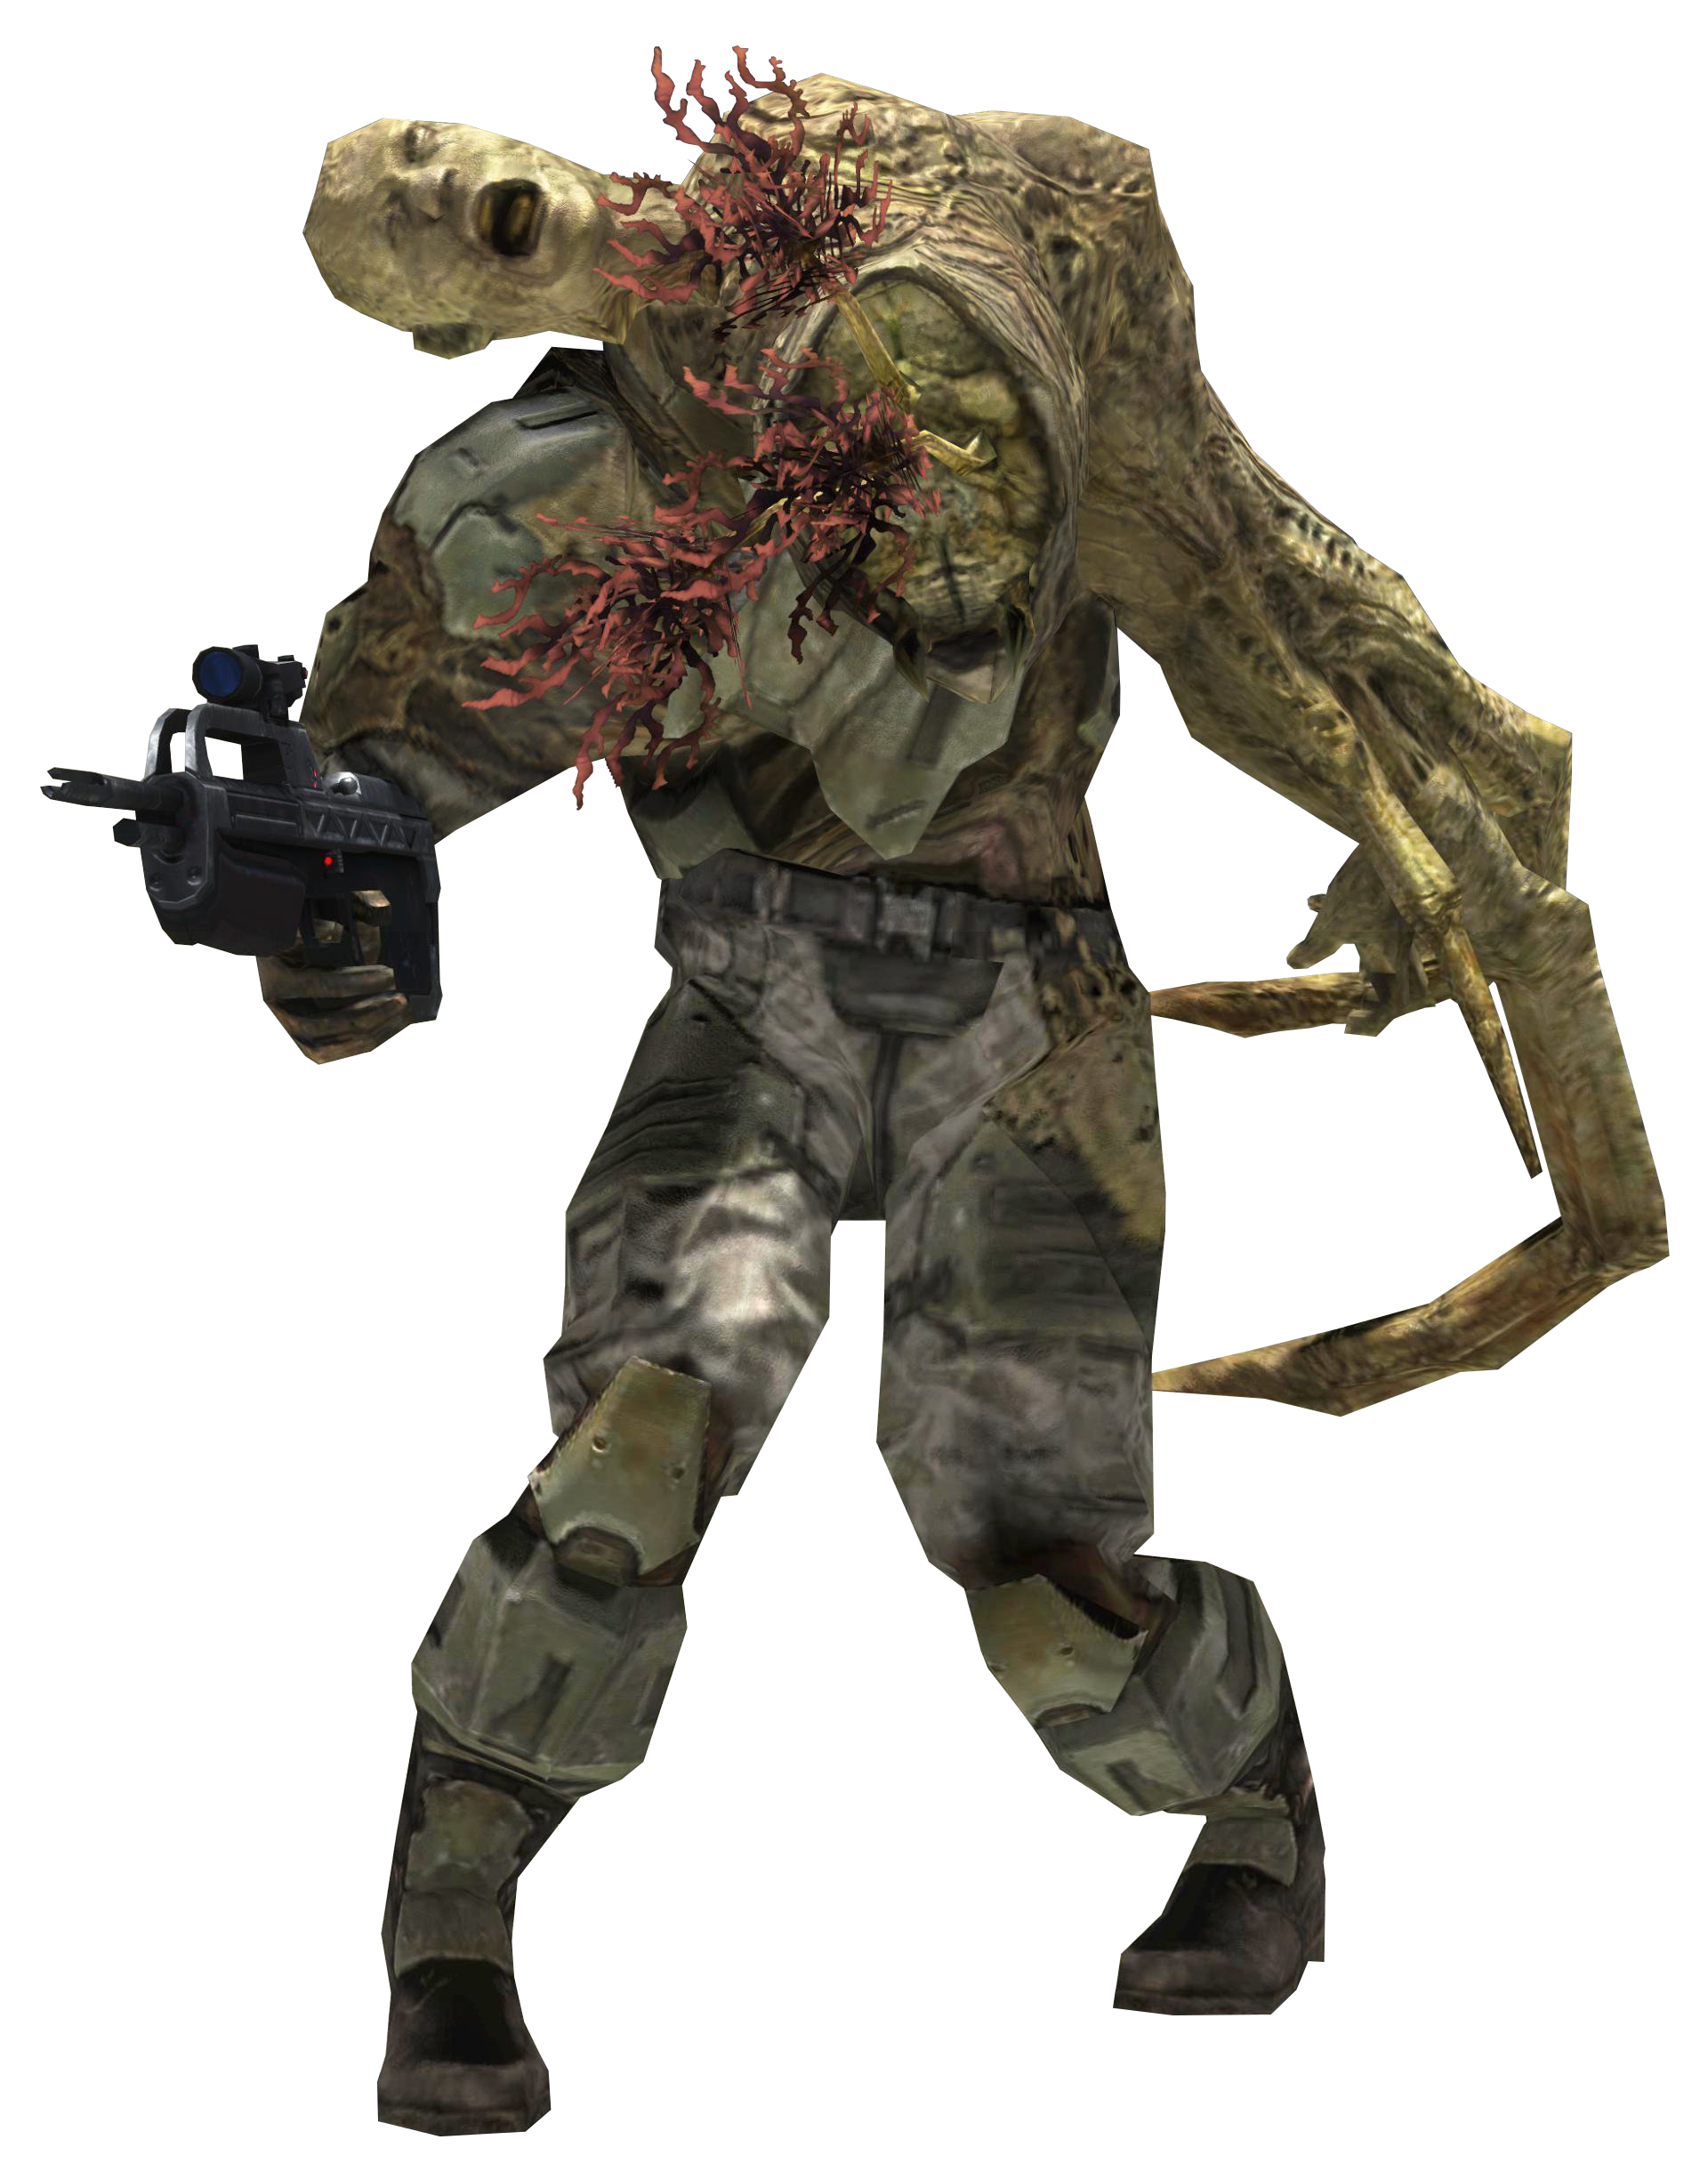 http://vignette4.wikia.nocookie.net/halo/images/f/f0/Human_Flood_Combat_Form_H3.png/revision/latest?cb=20140414105255